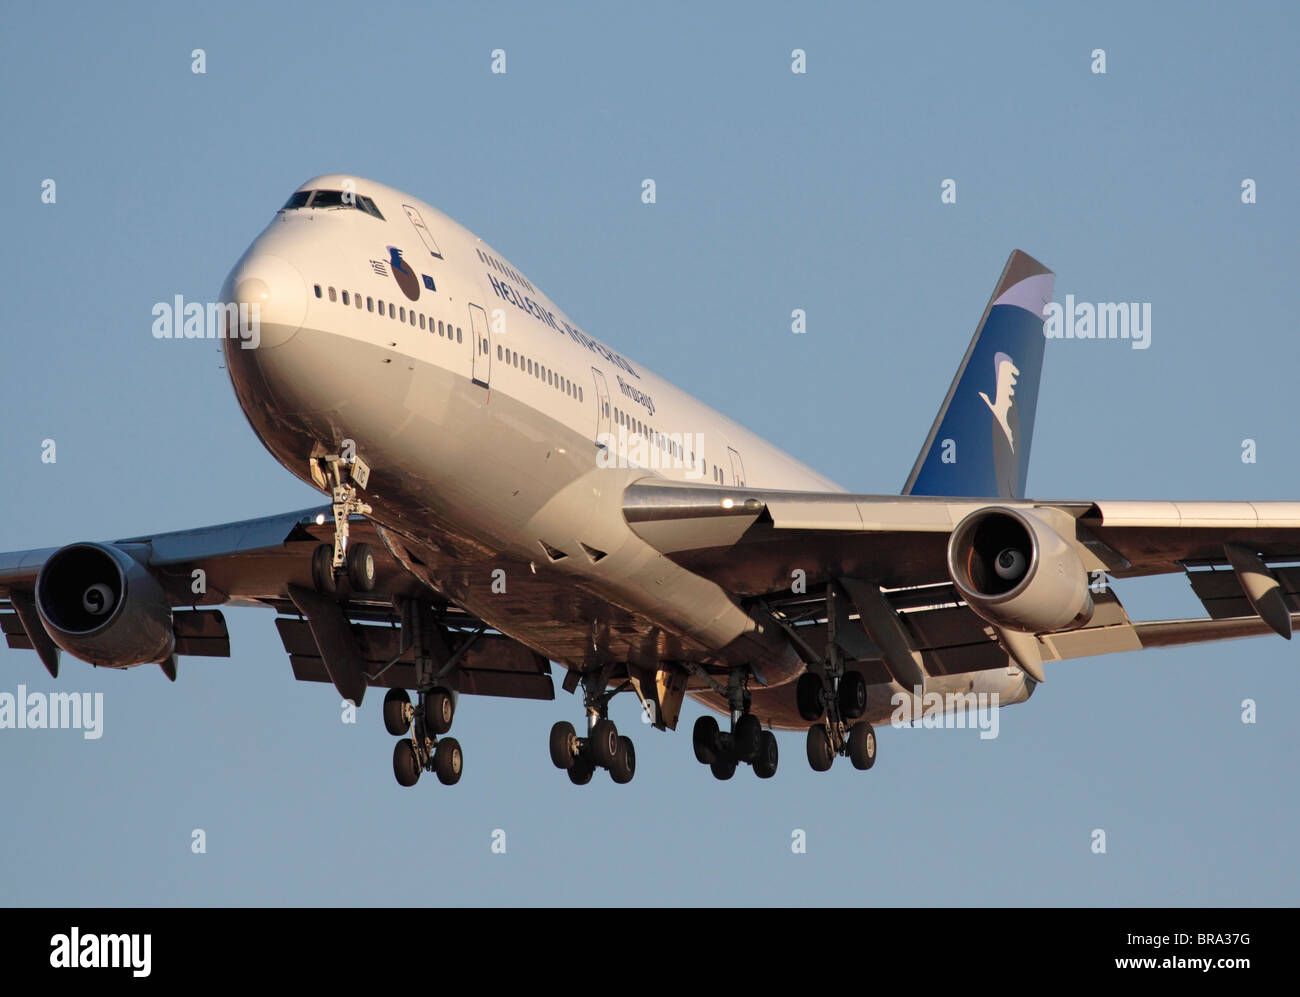 Close up view of a Hellenic Imperial Airways Boeing 747 jumbo jet on arrival - Stock Image